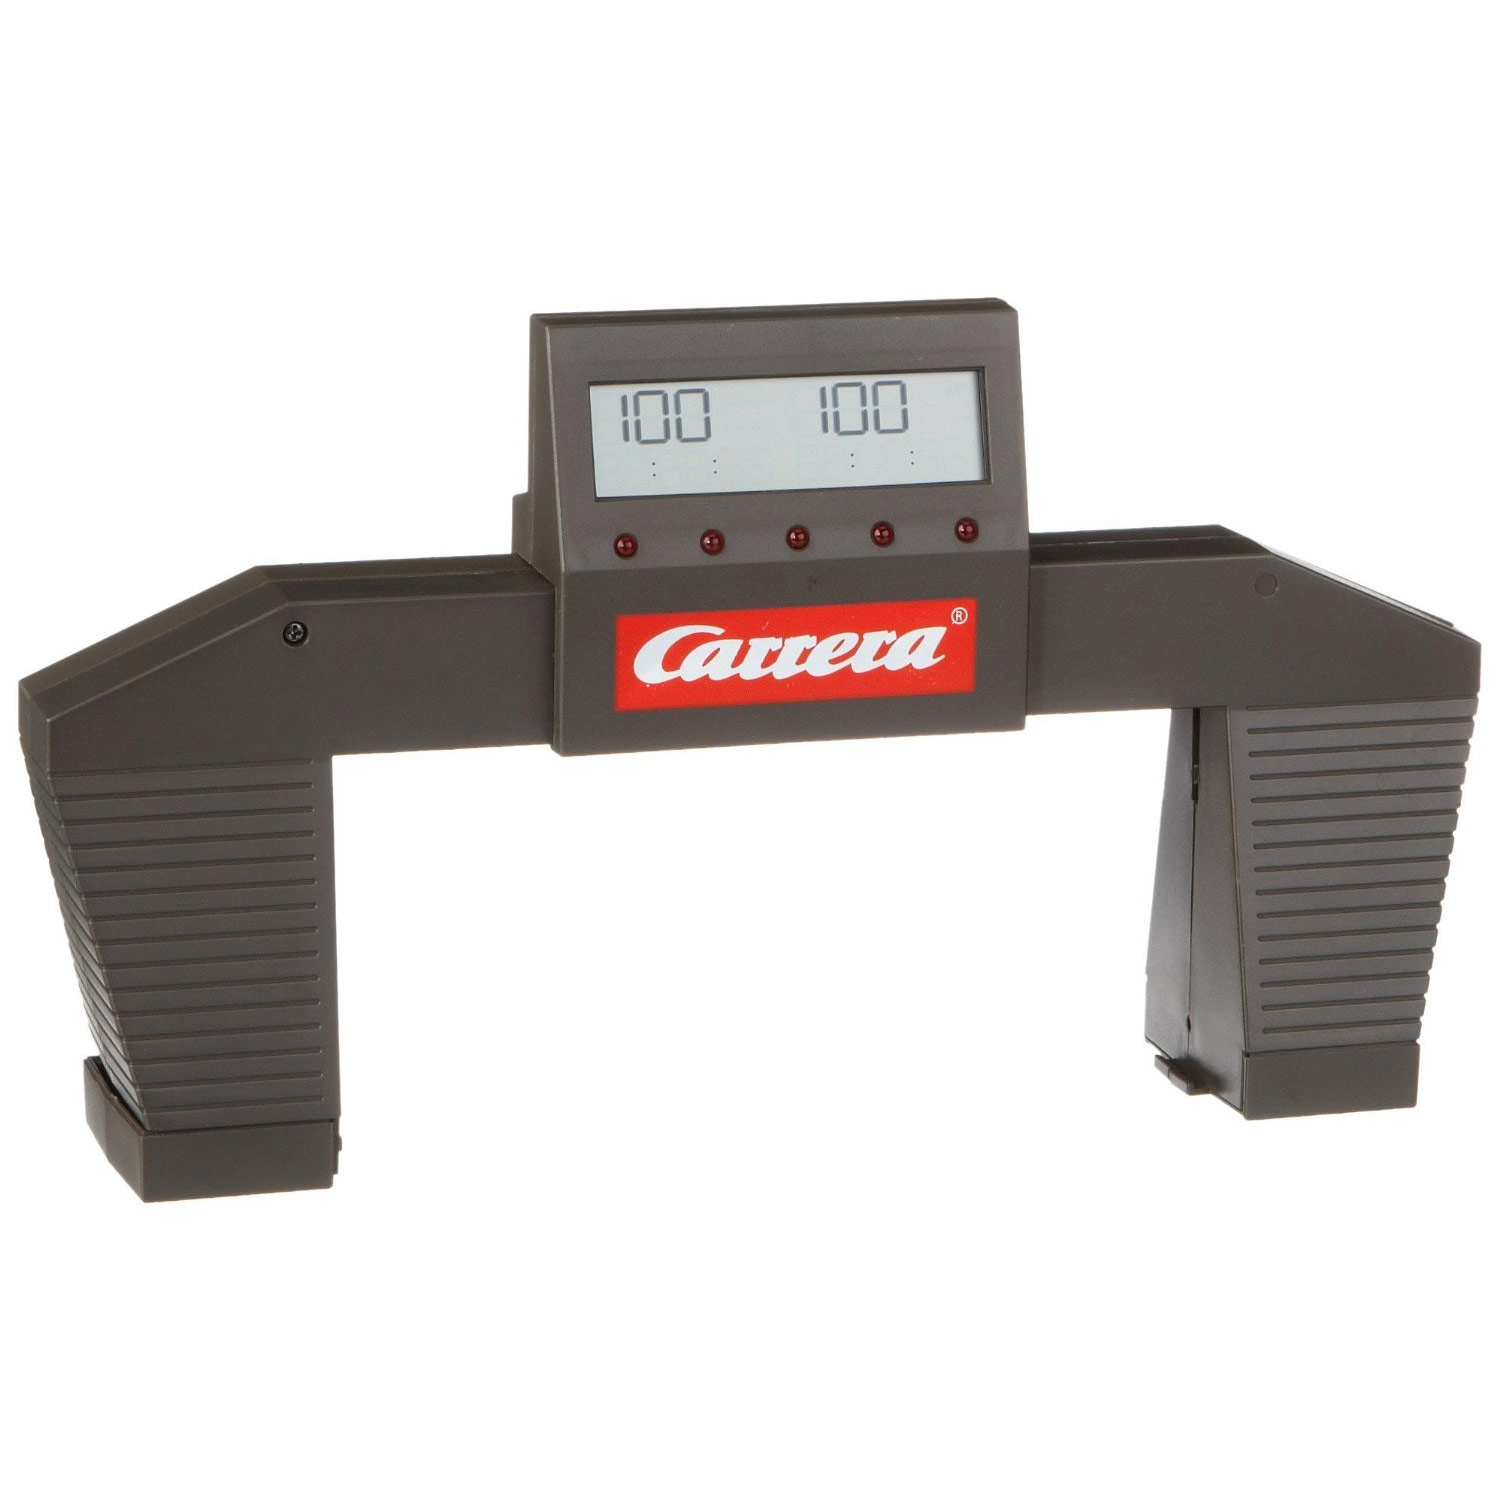 Race Track Lap Timer >> Carrera Adjustable Electronic Lap Counter (71590)